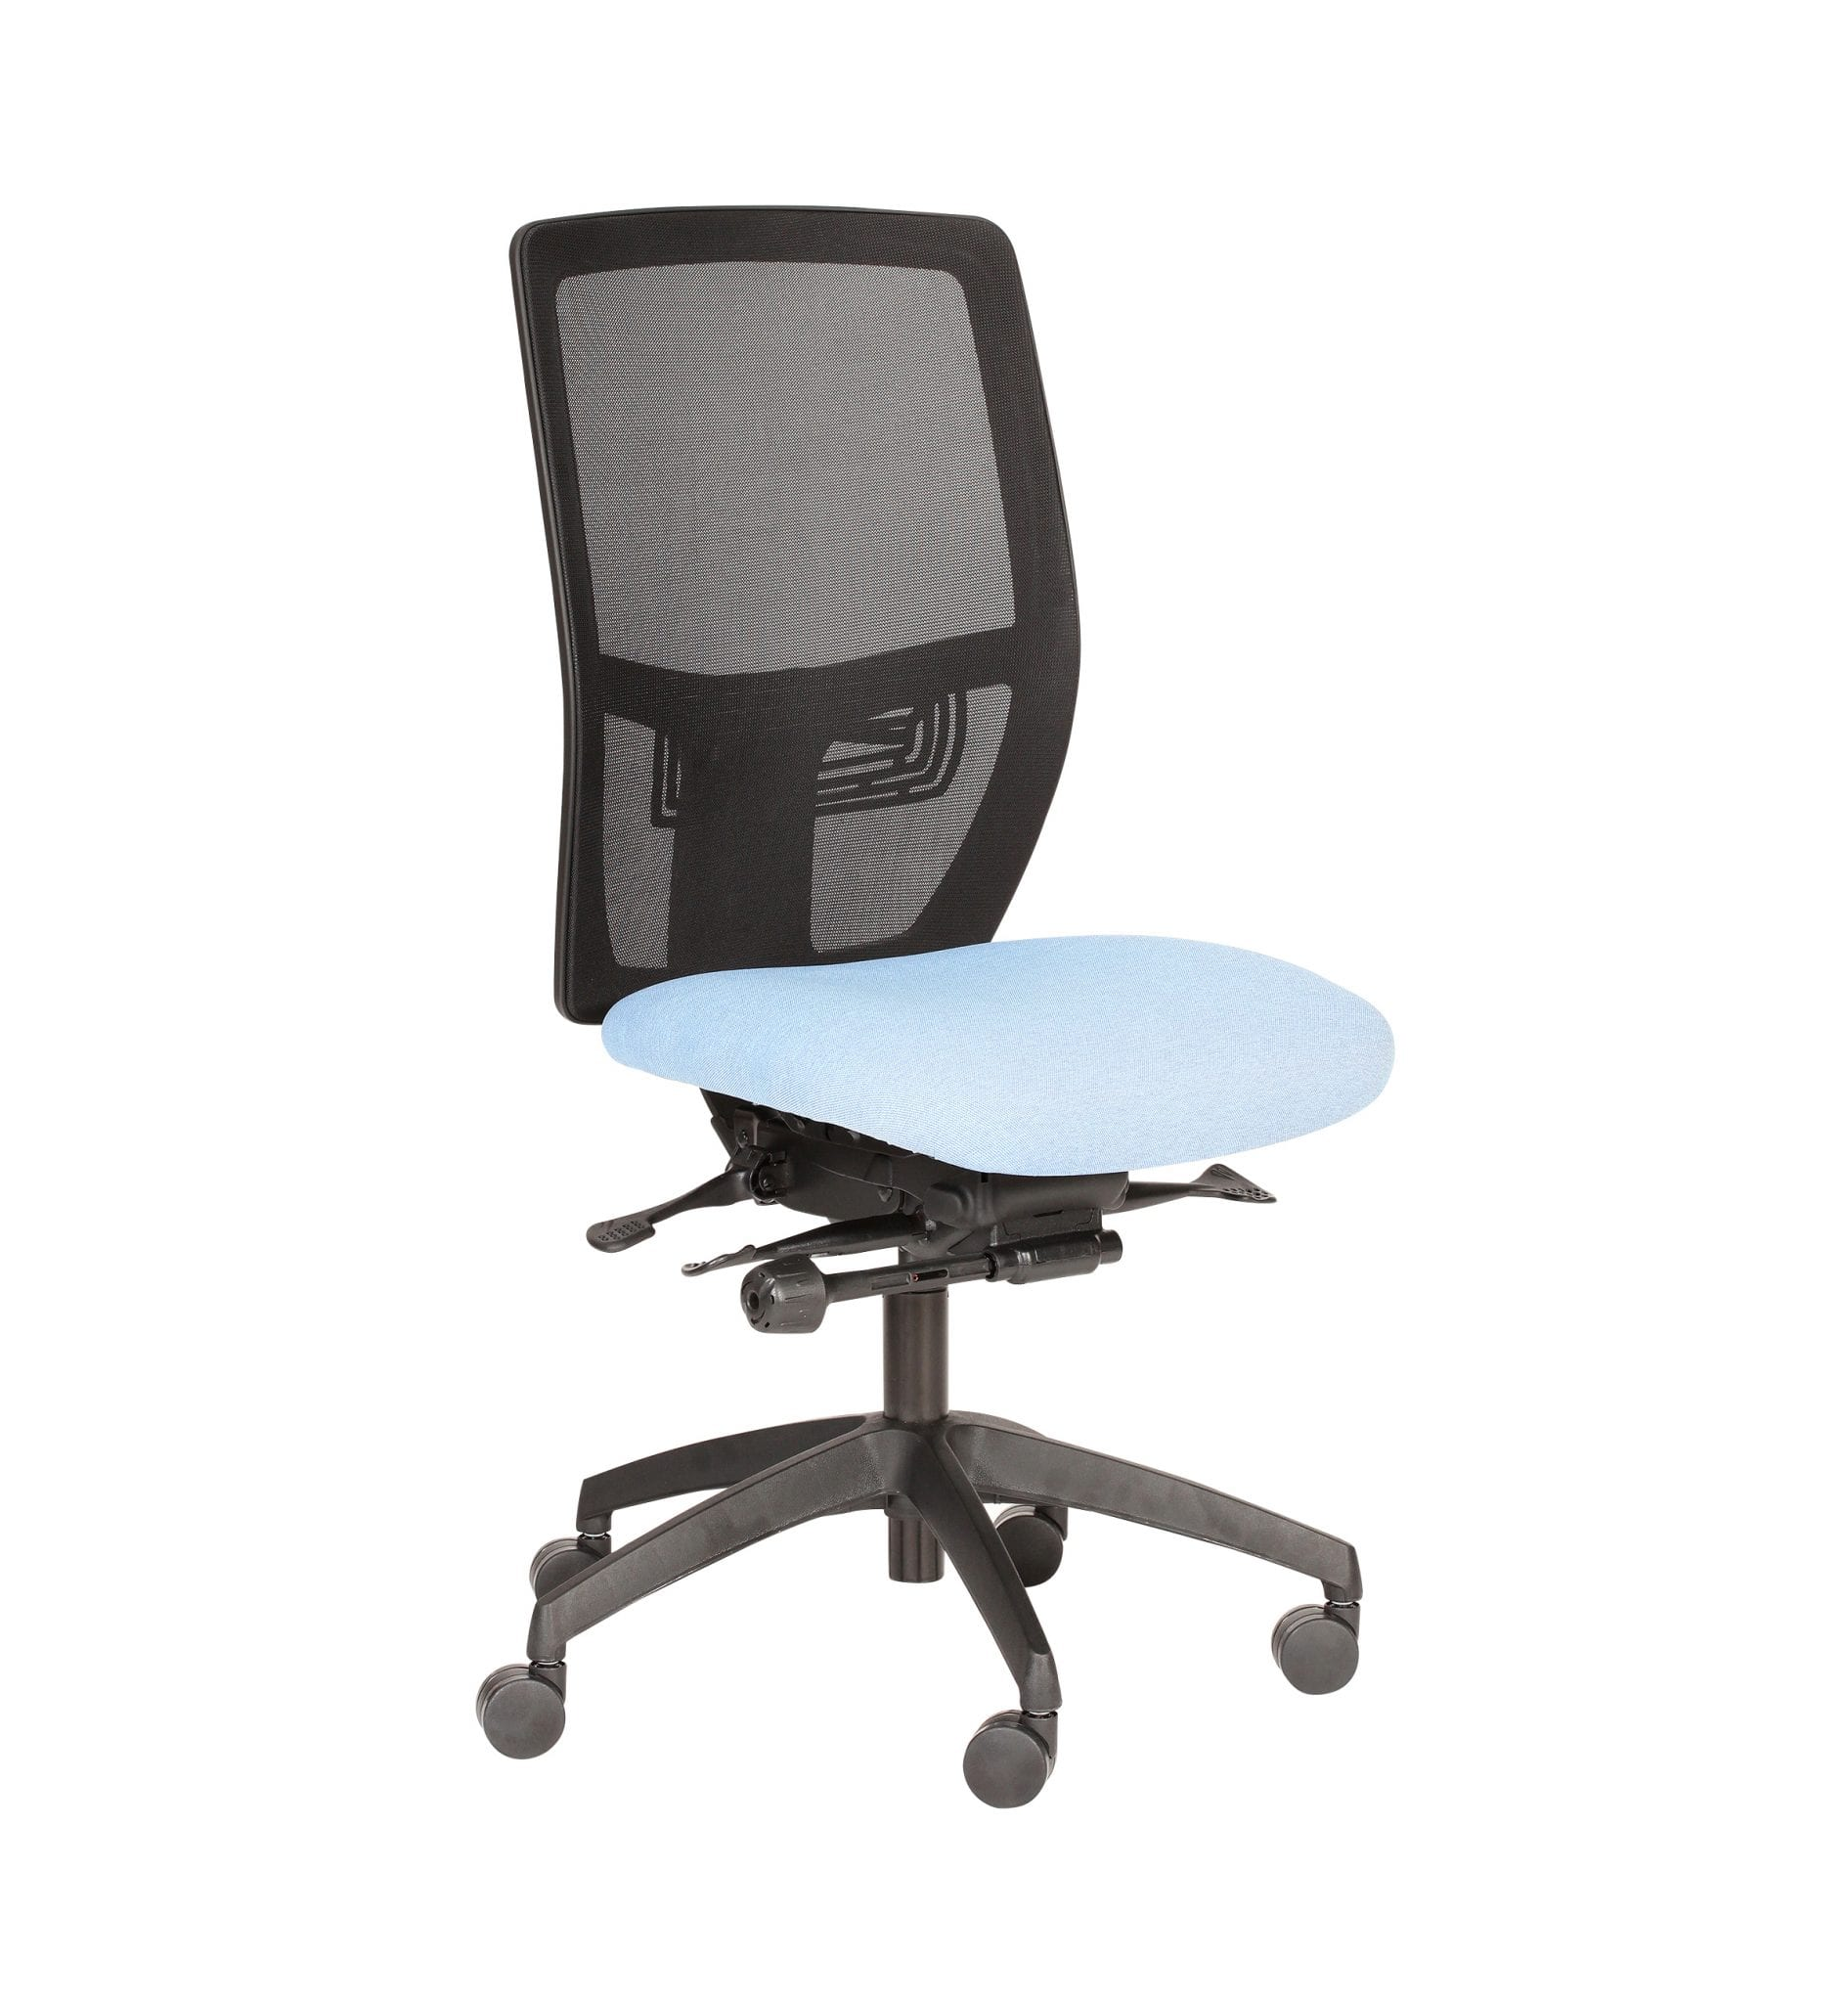 PMB73 – Posturemax COOL - Office chair with easy adjustment for everyday use. Ideal for office and call centre use – from Summit Chairs